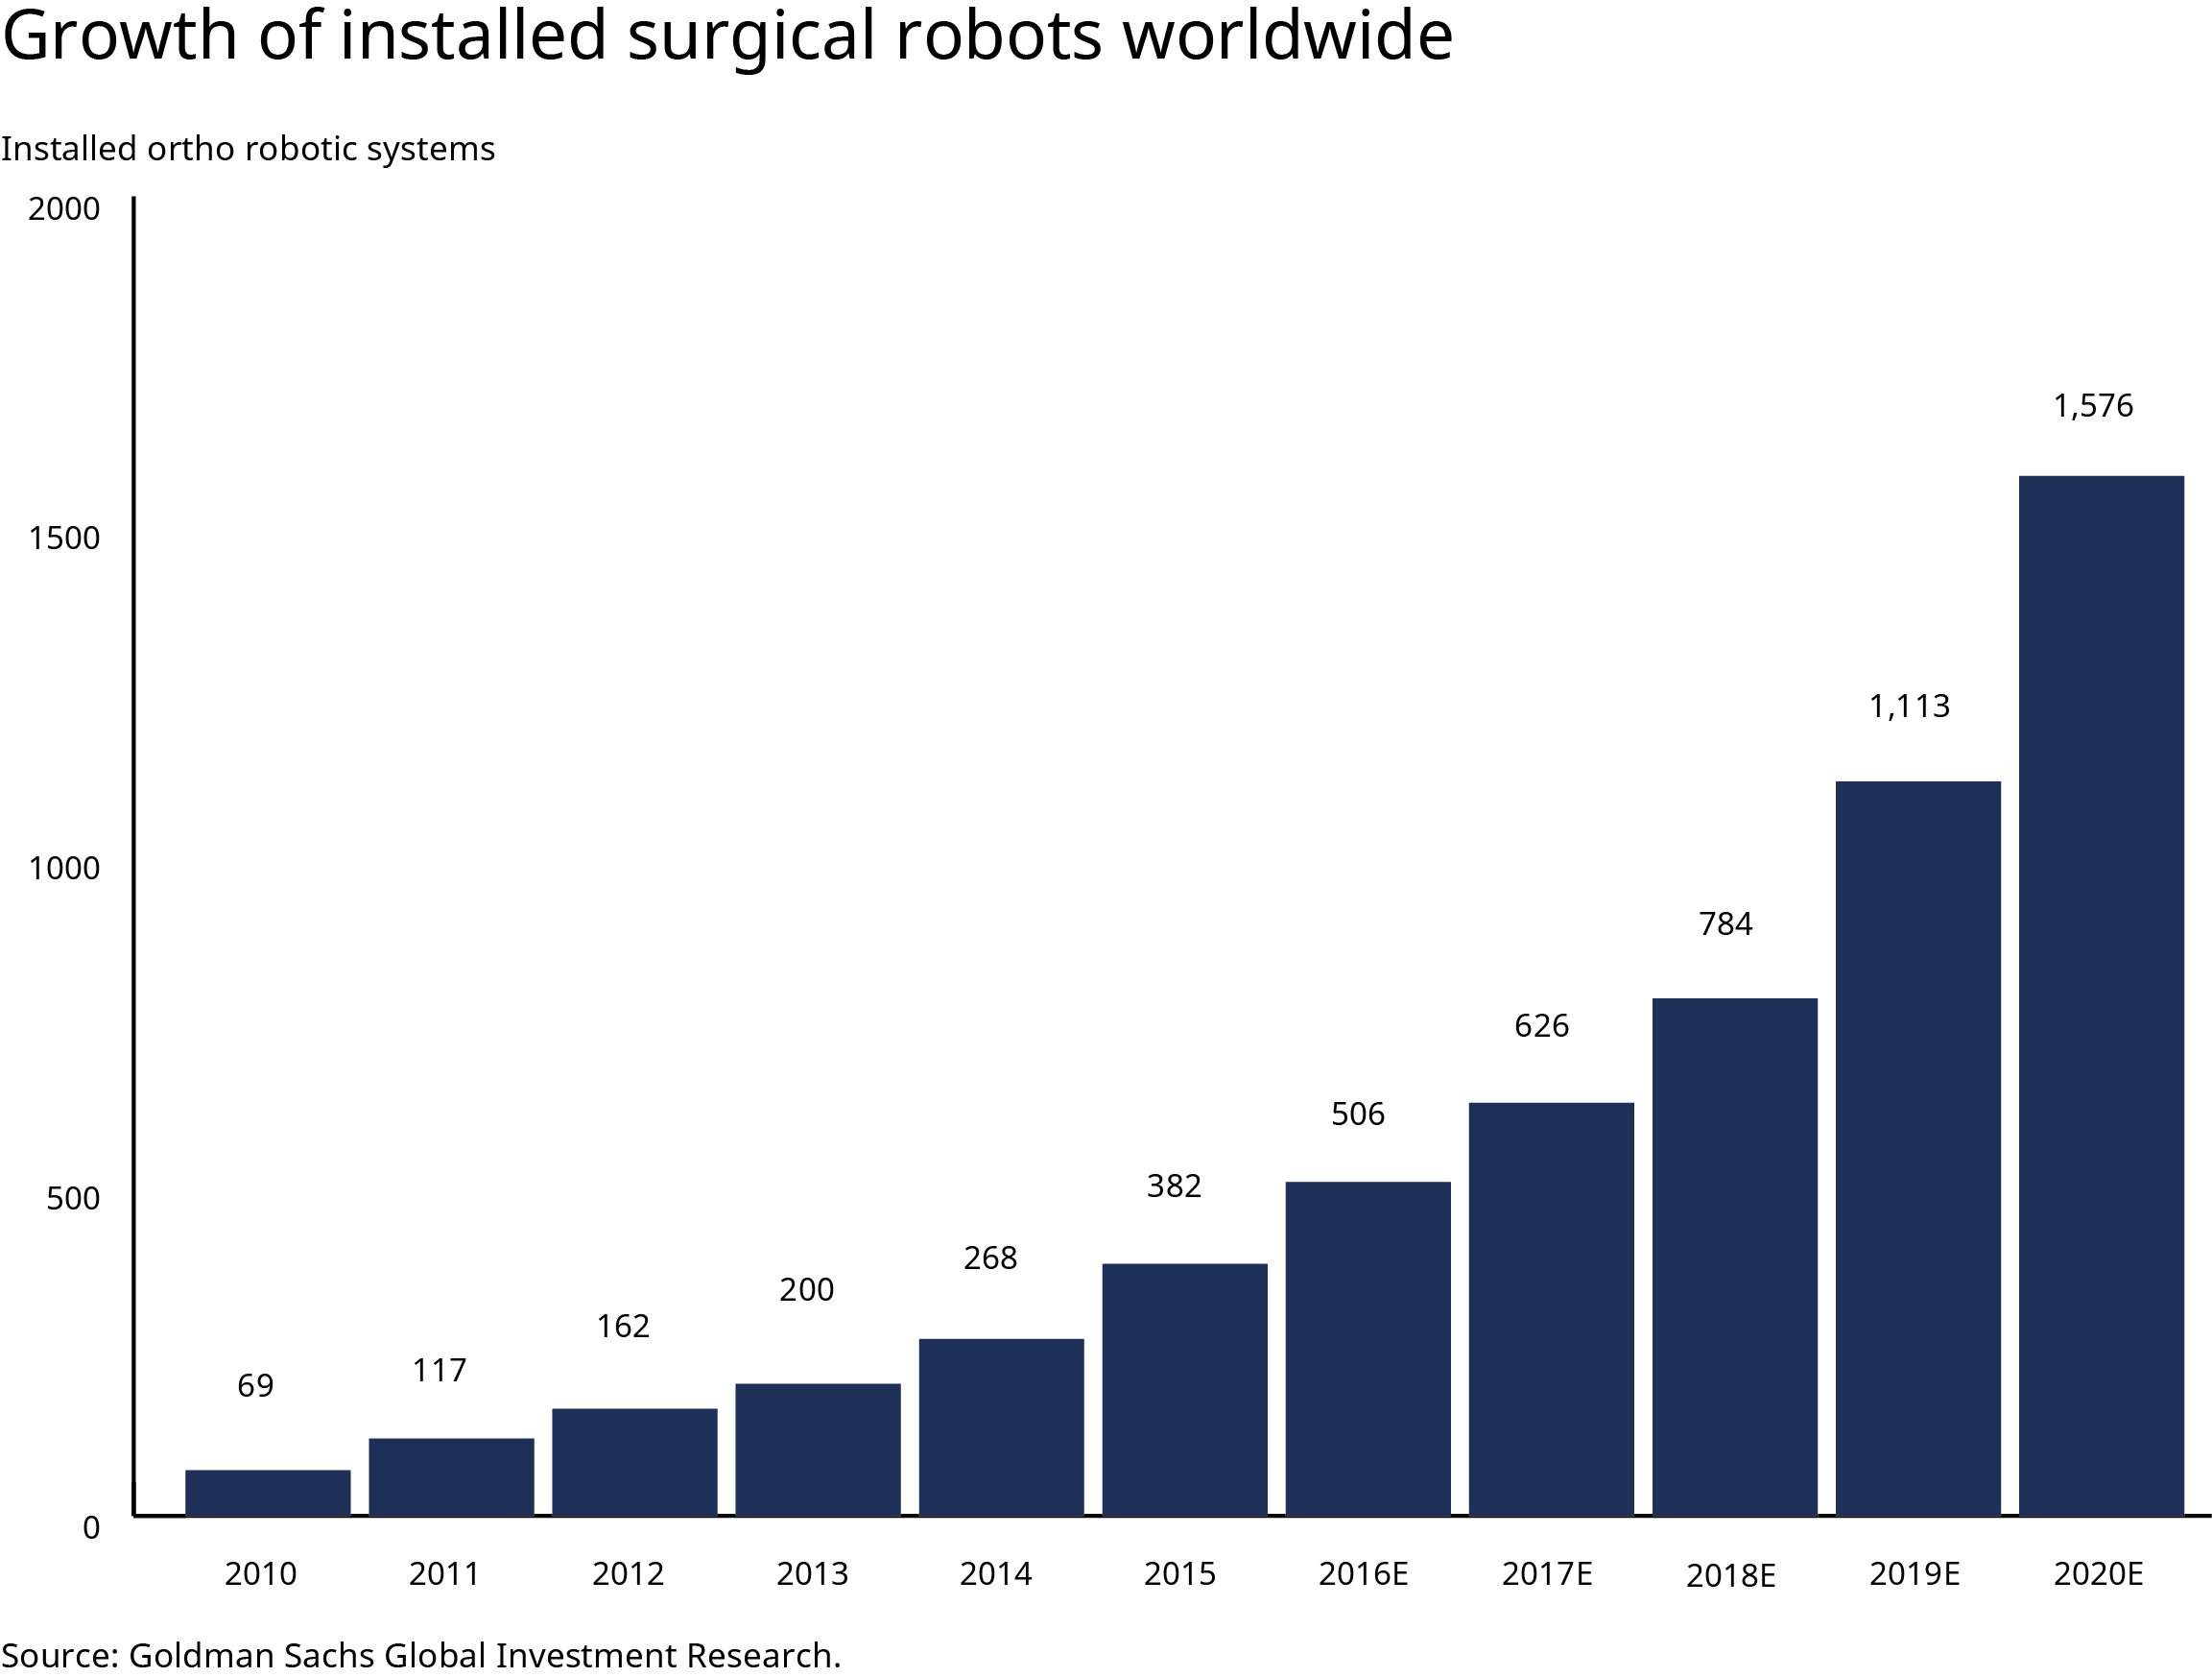 Growth of robotic surgeries from 2010 to 2020